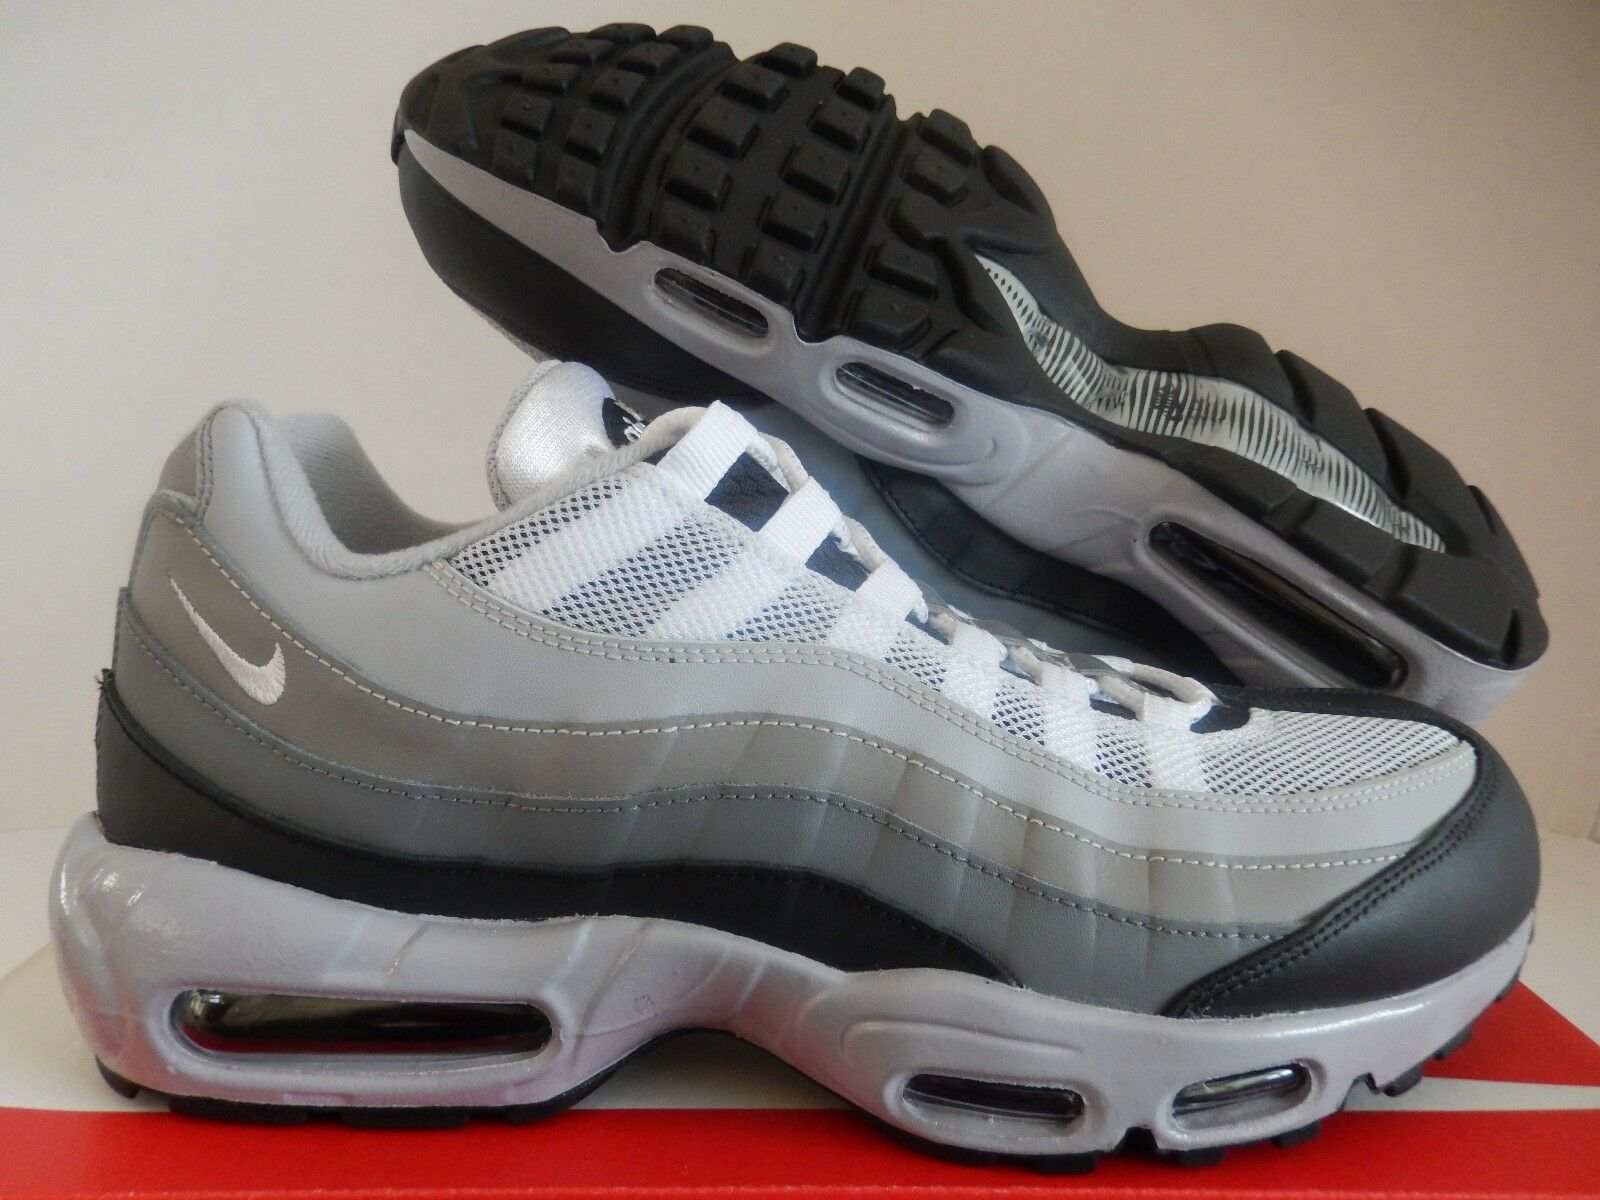 bei nike grey-white-black-dark air max 95 id grey-white-black-dark nike grauen sz 10 [818592-995] 316012